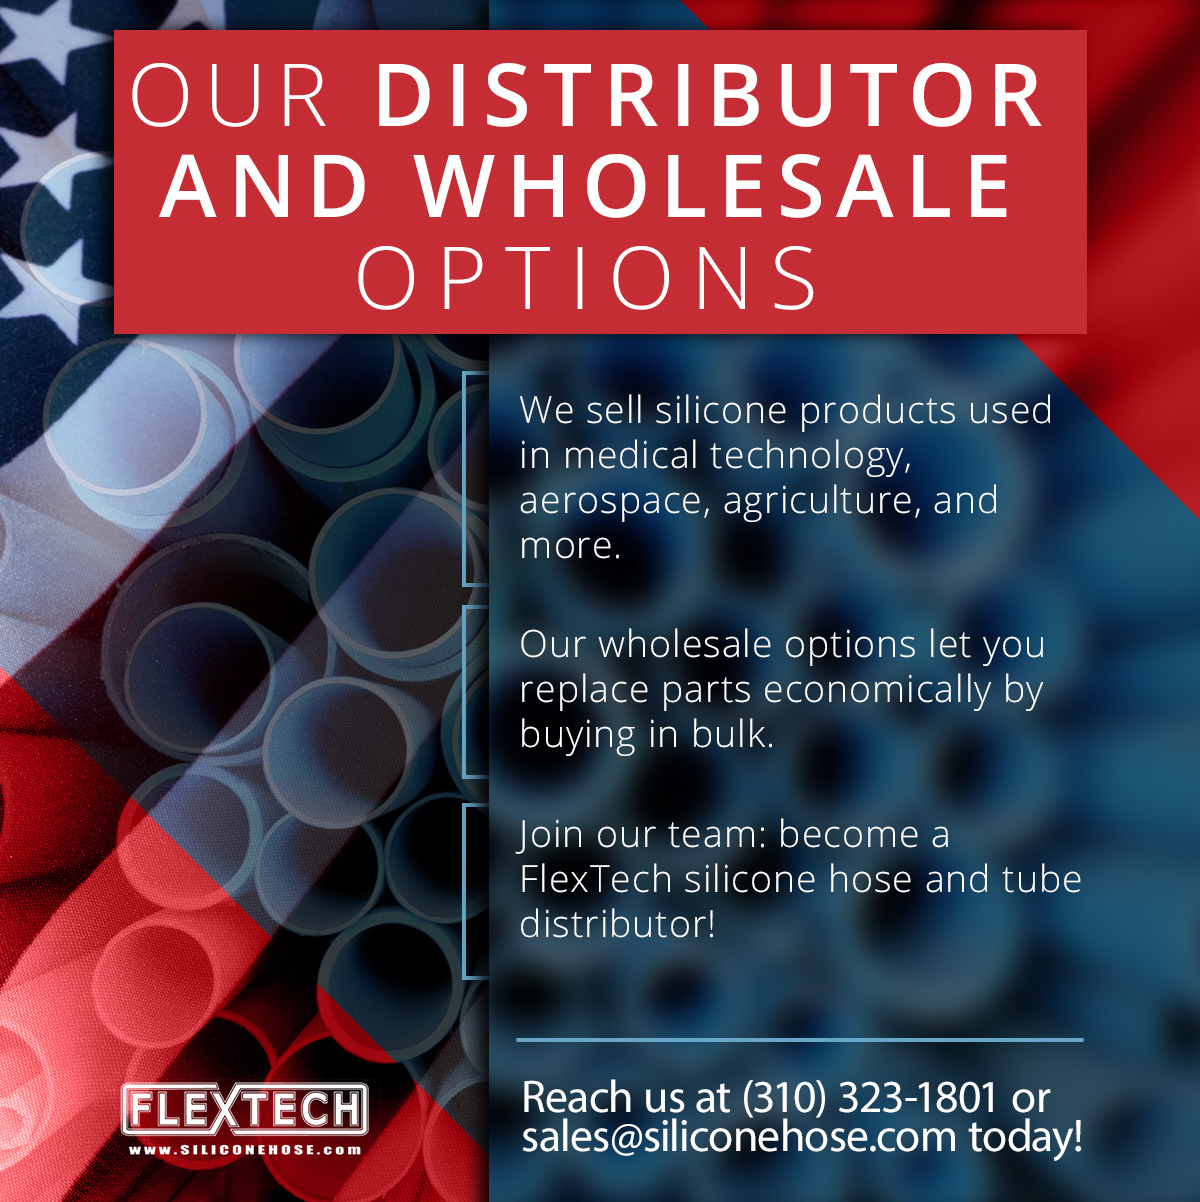 Silicone Hoses and Tubes for Distributors - Flex Technologies